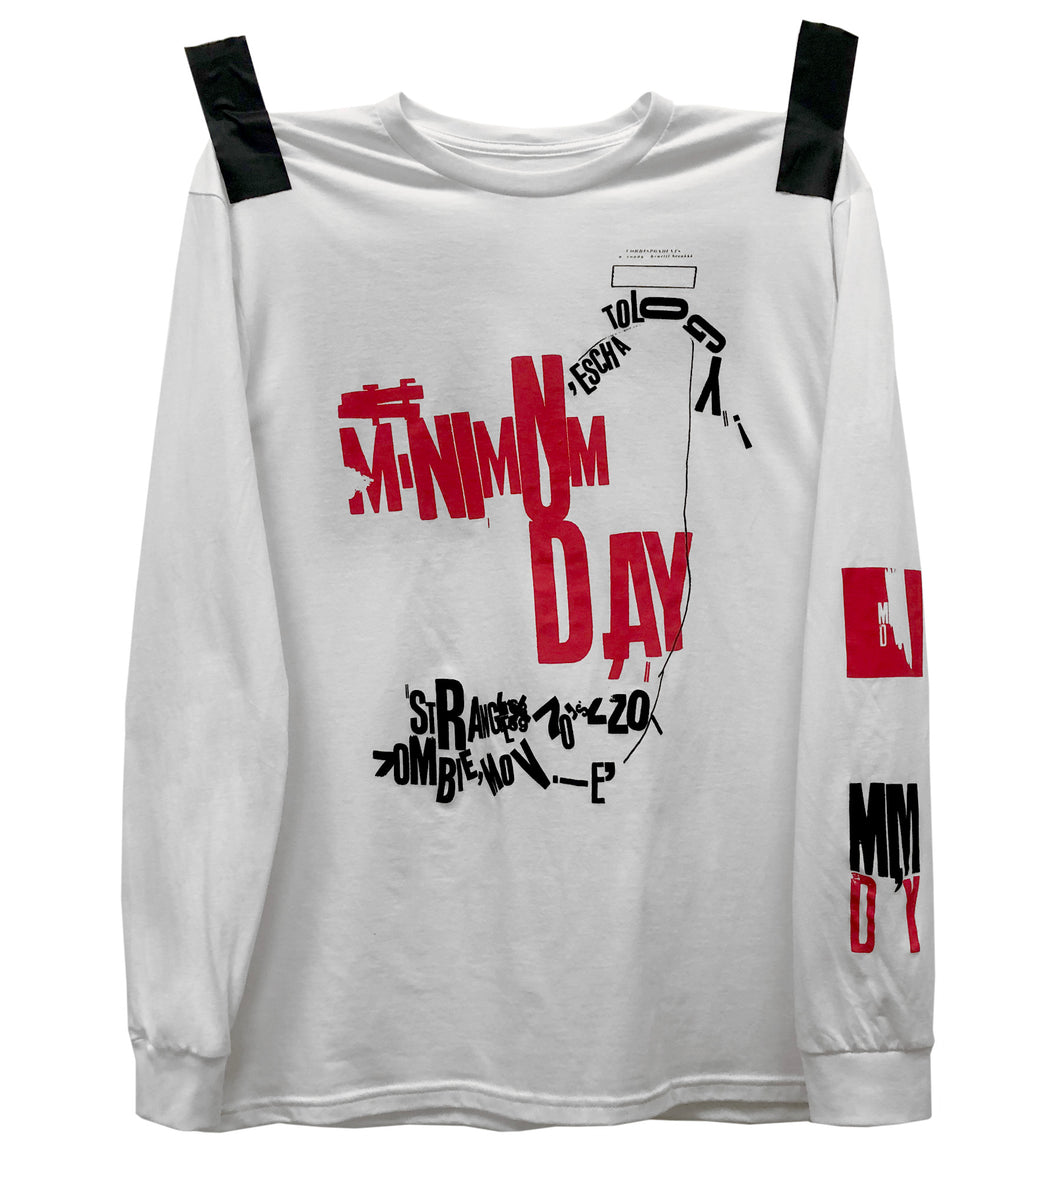 Minimum Day (Long Sleeve)